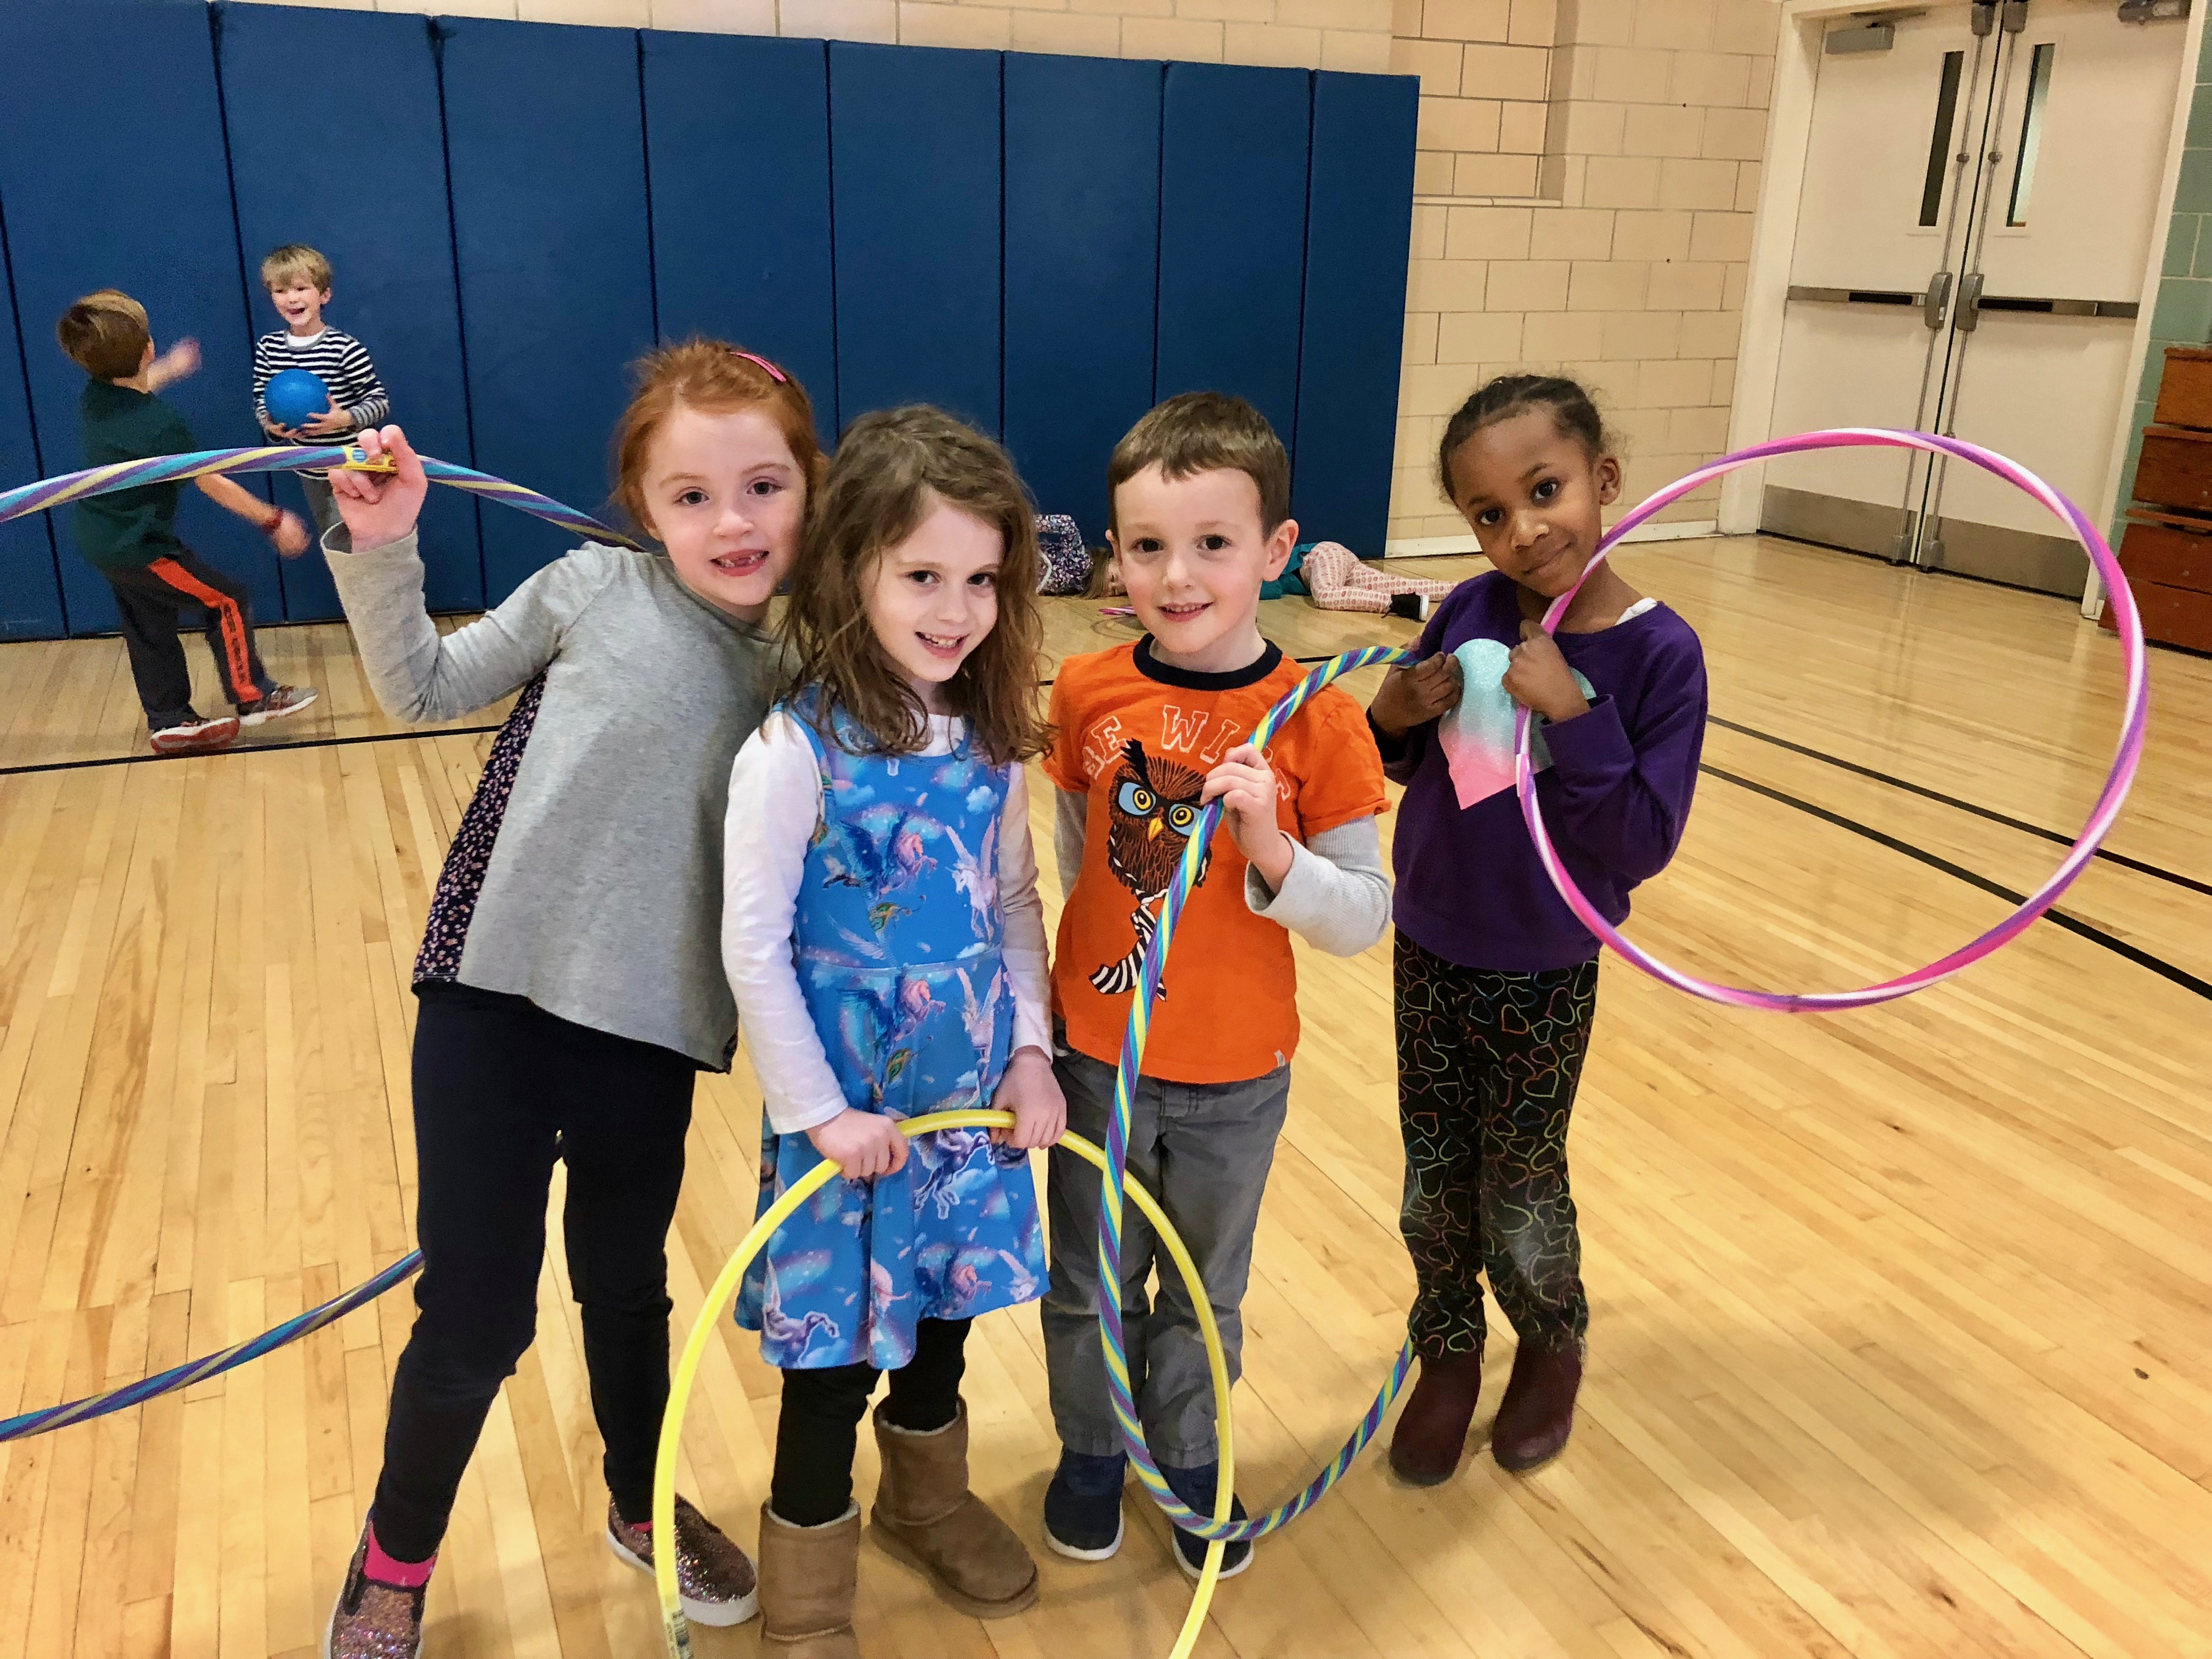 Young children in a gym holding hoola-hoops